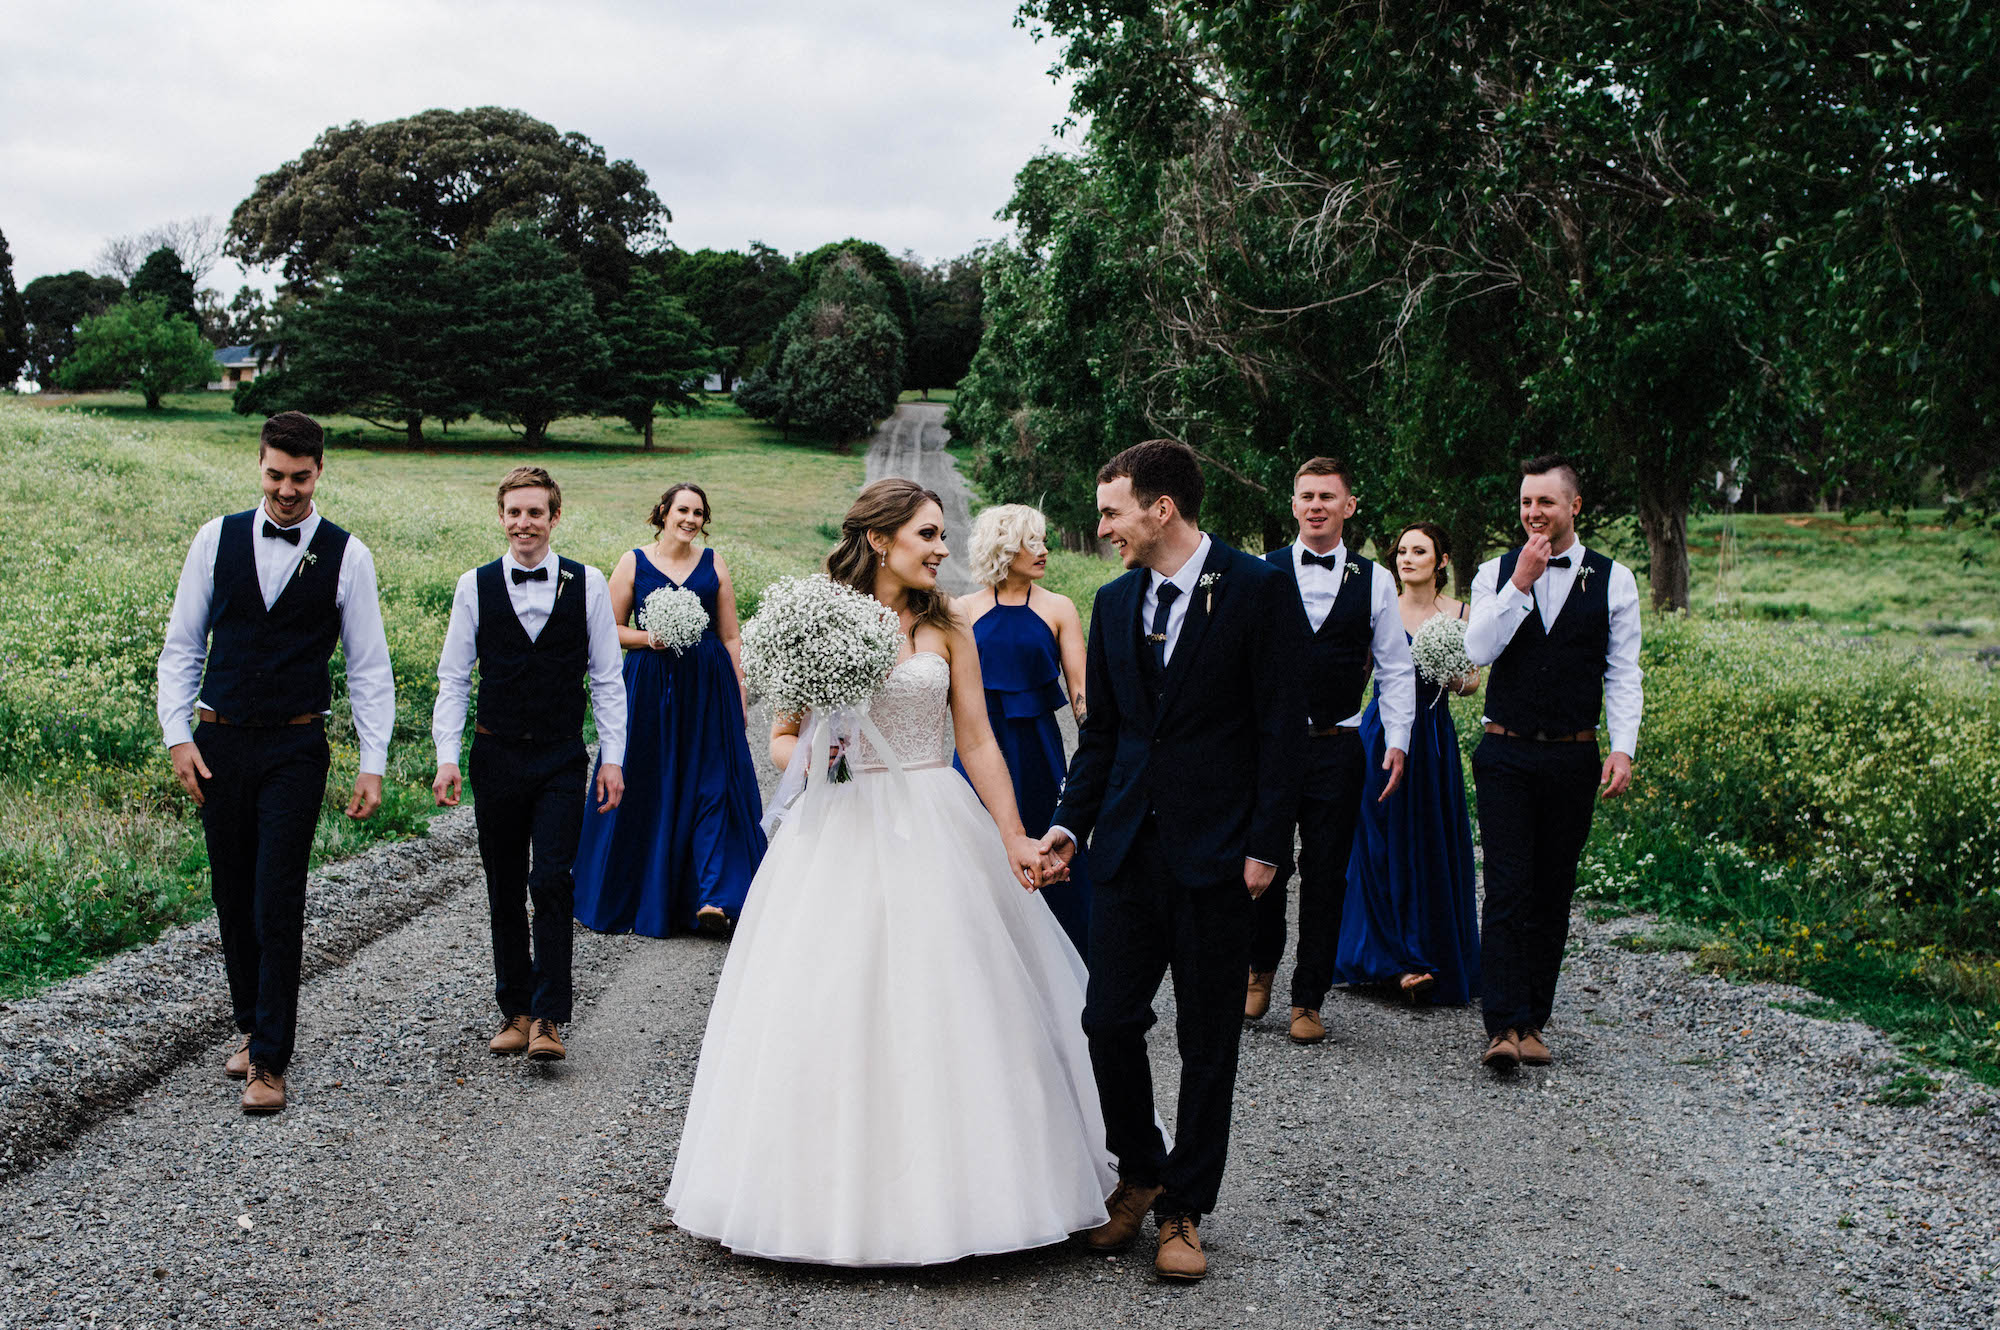 Authentic wedding photography of the bridal party walking together at Quarry Farm, Western Australia.